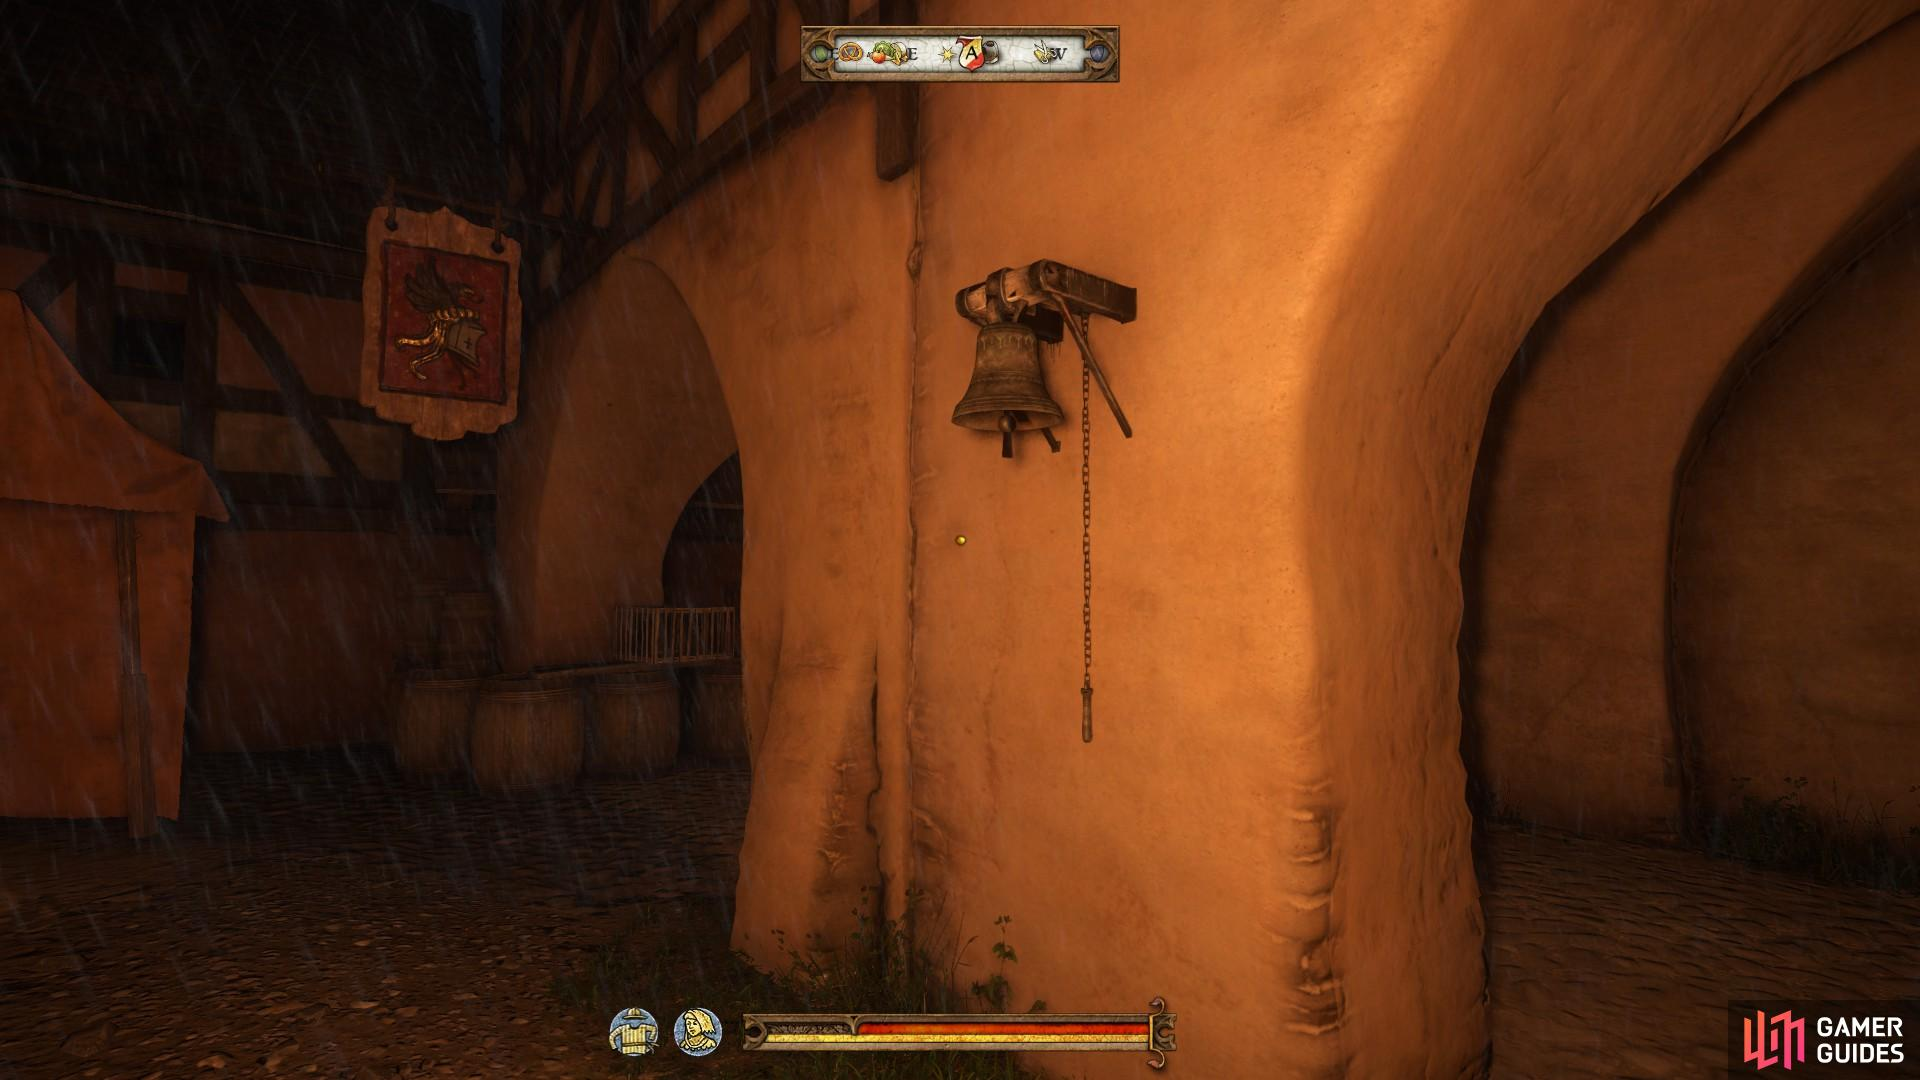 Ring the bell by the Rathaus to signify the ending of the day. It is located on the wall just outside the Armourer shop.